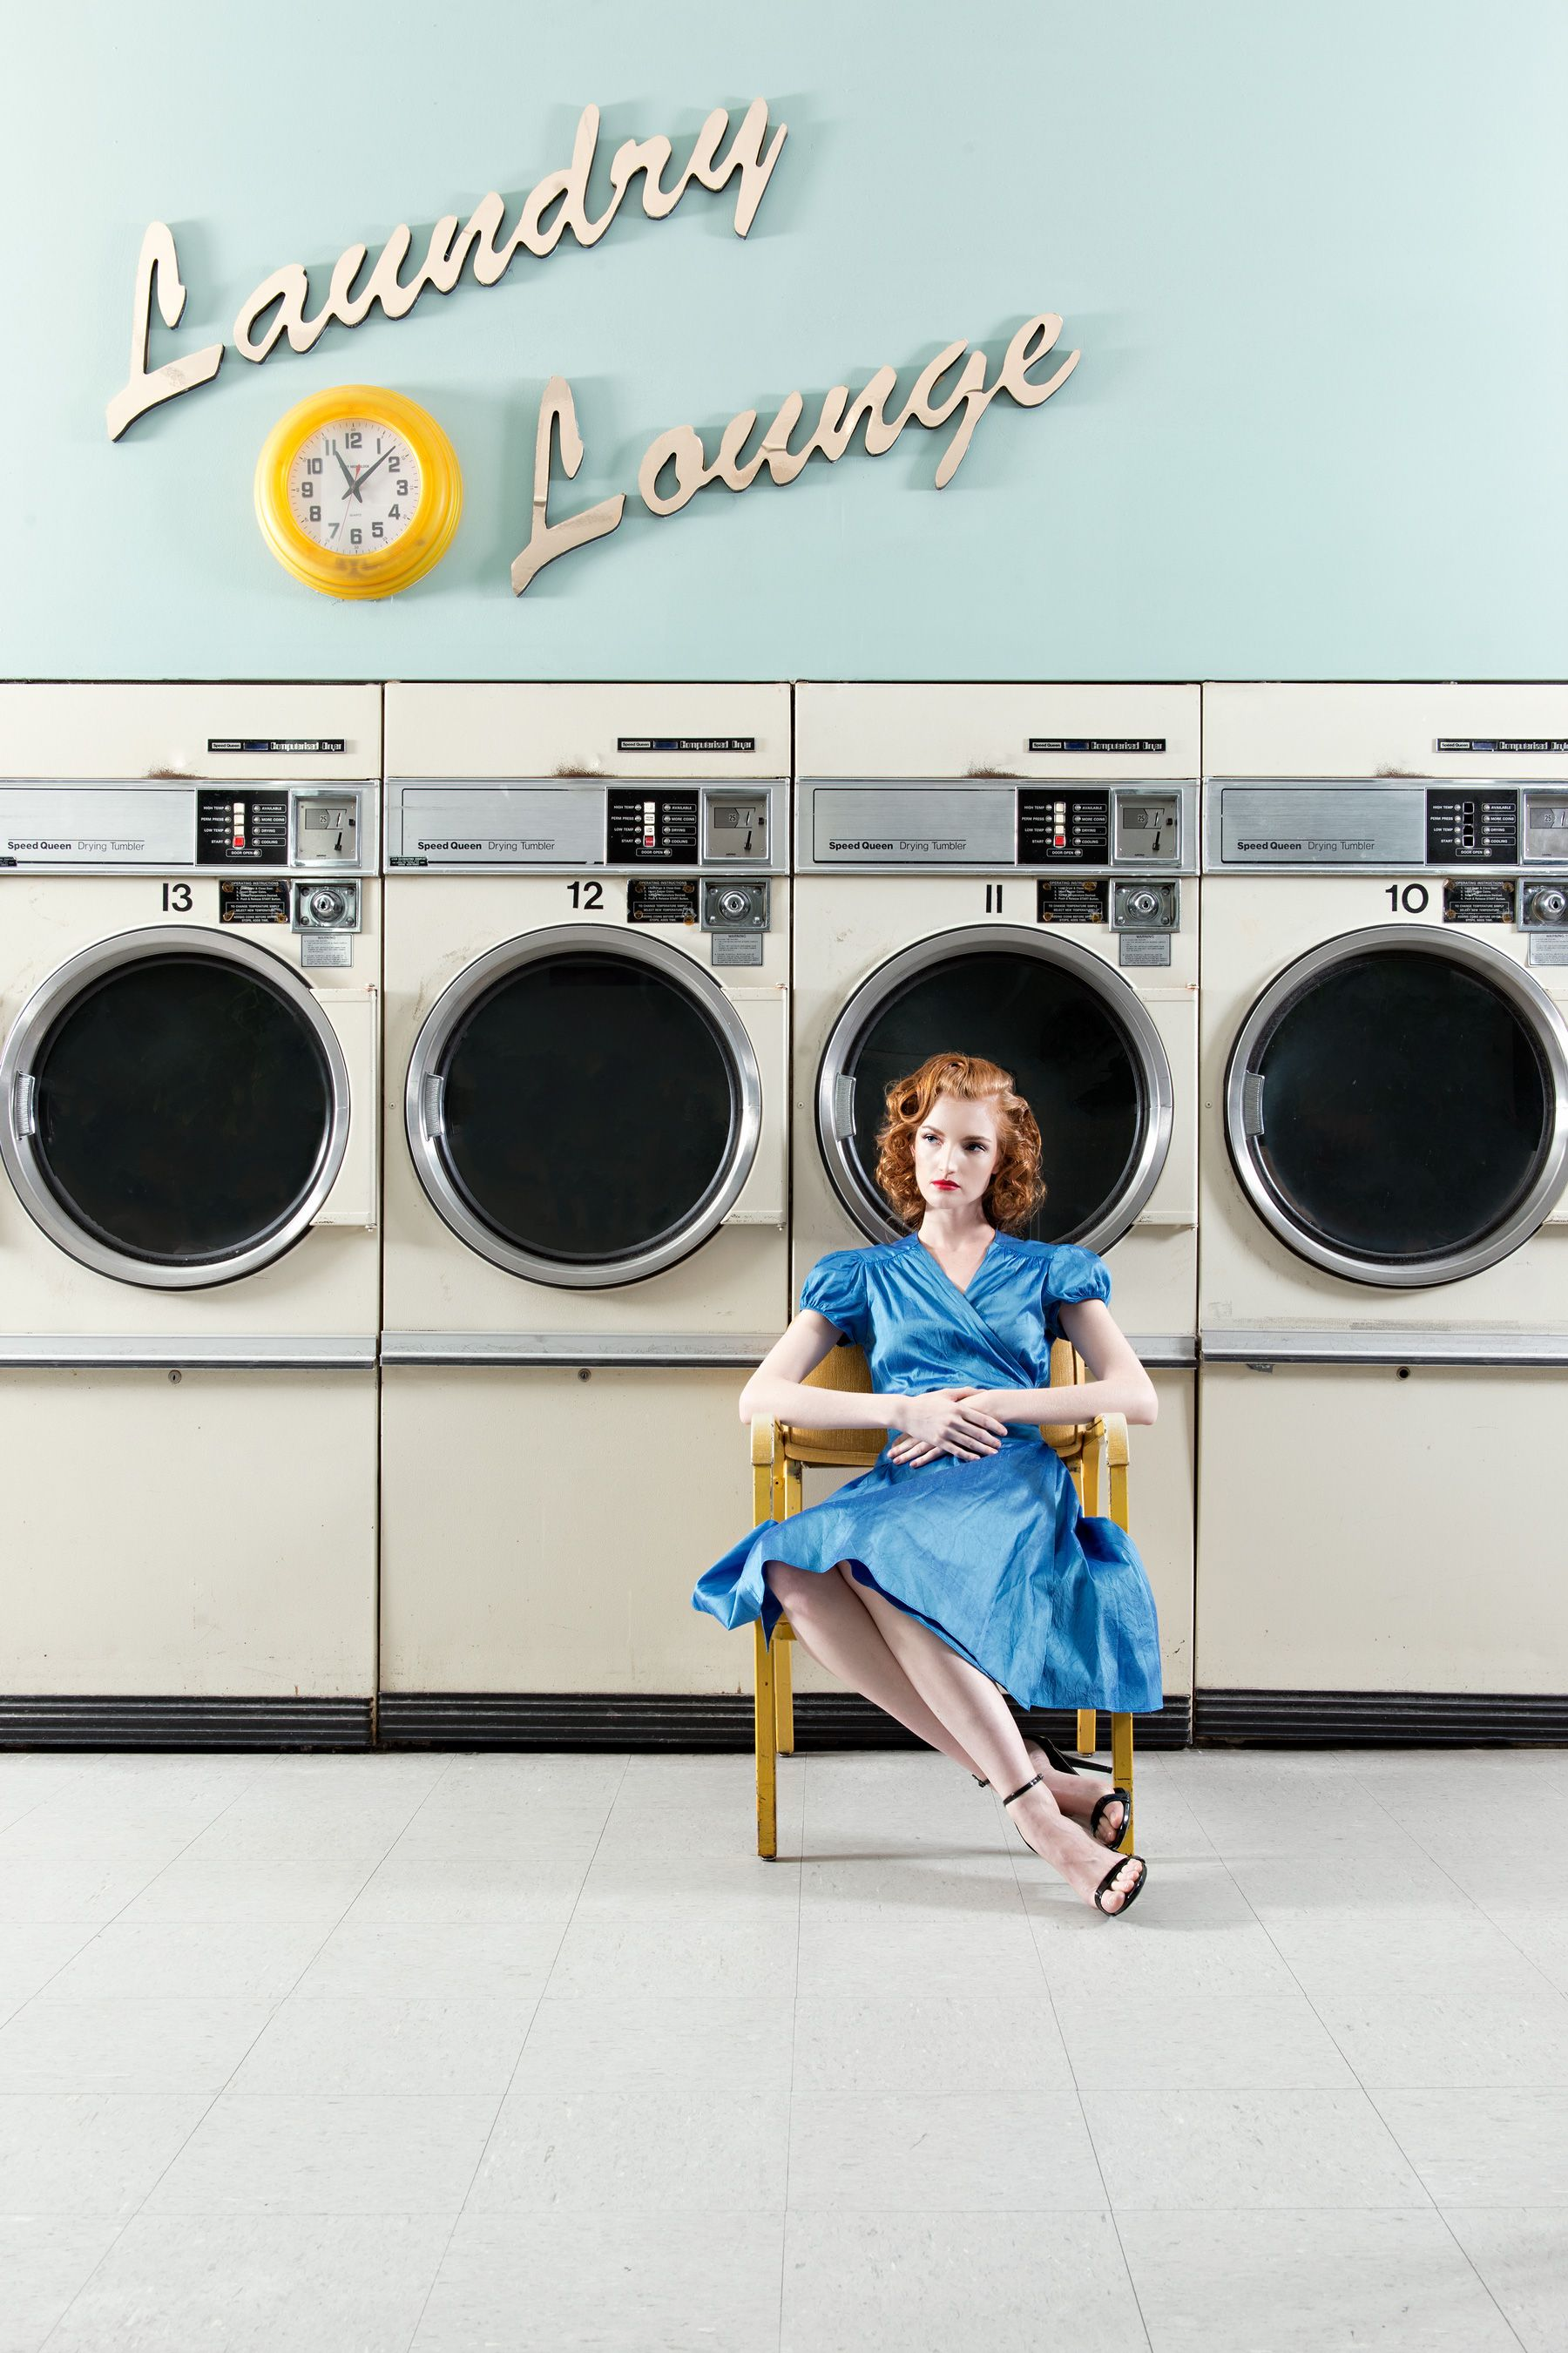 The Laundry Lounge On Behance With Images Laundry Lounge